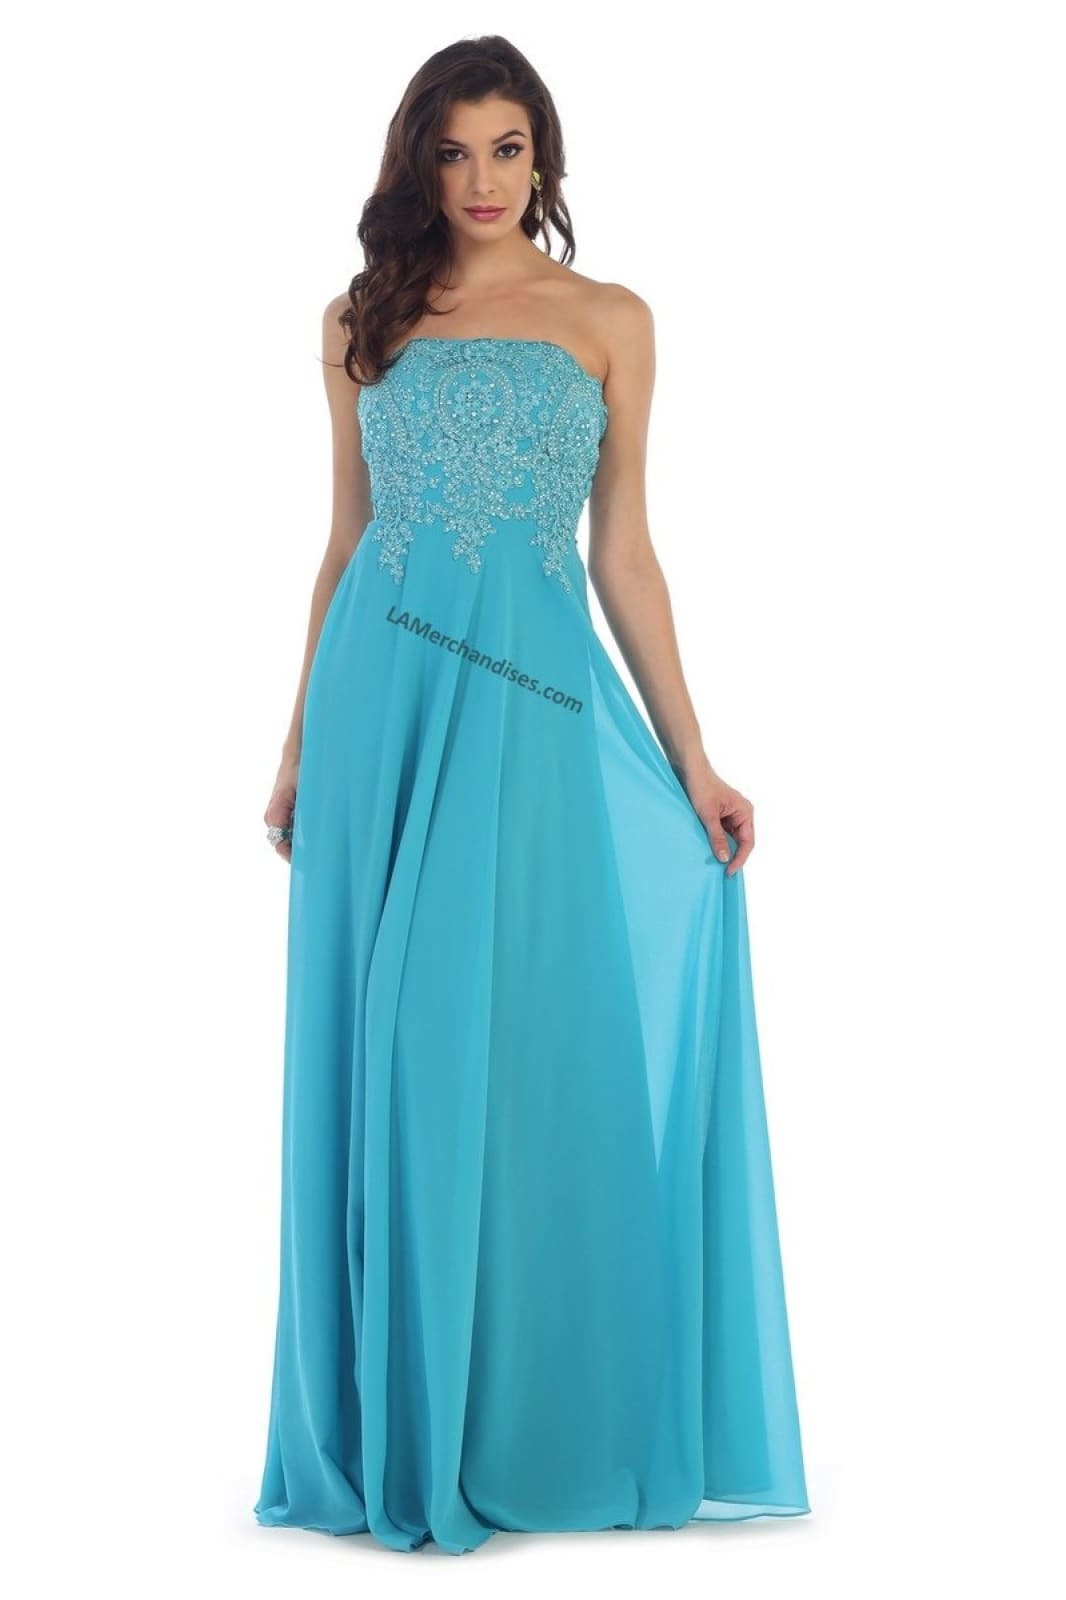 Strapless lace applique sequins PLUS size chiffon dress-